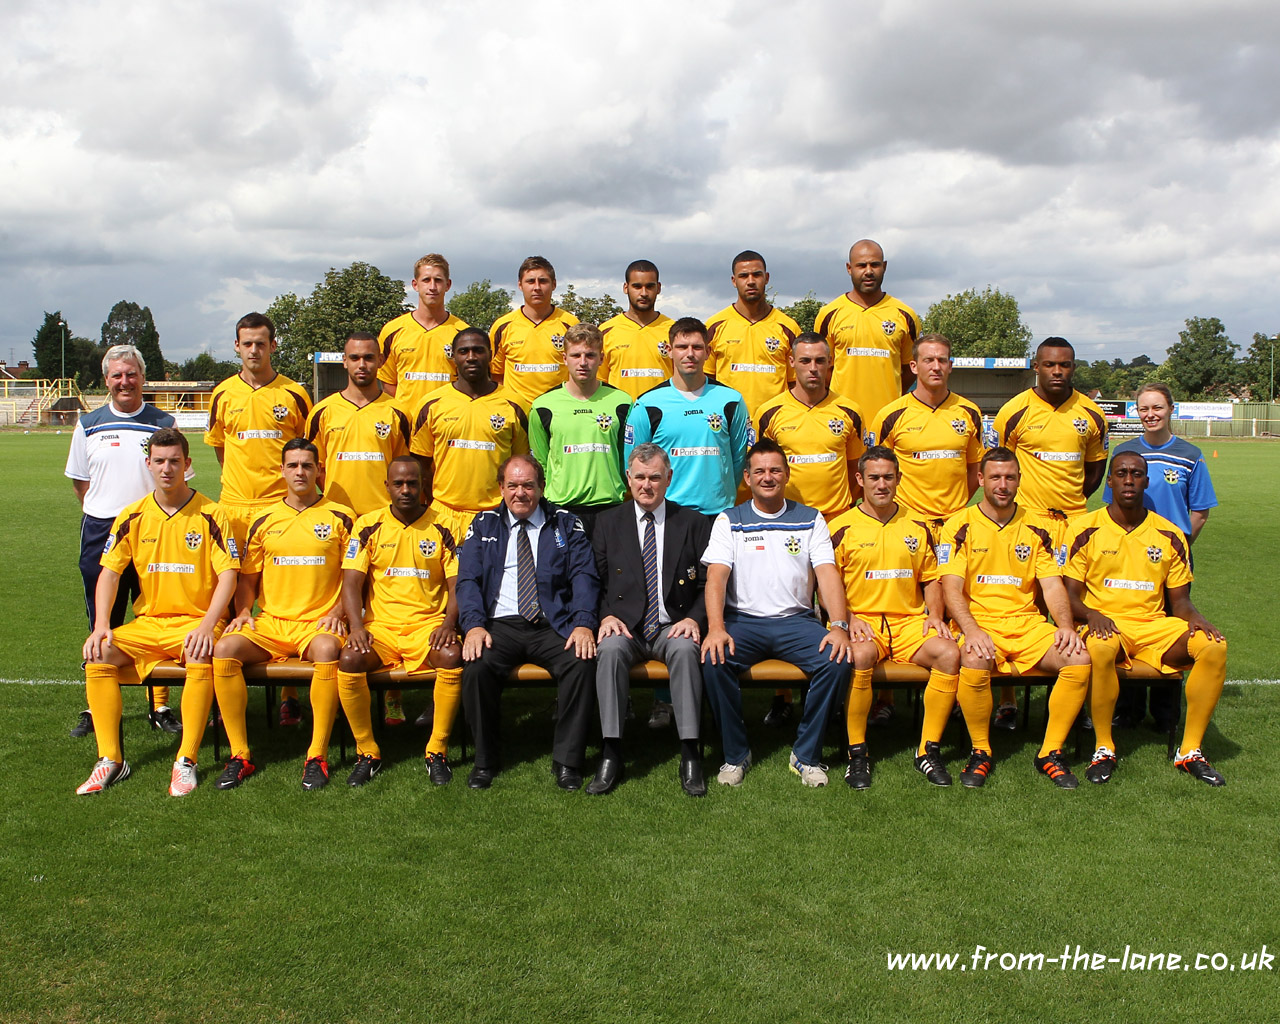 From The Lane An Unofficial Sutton United Fc Website